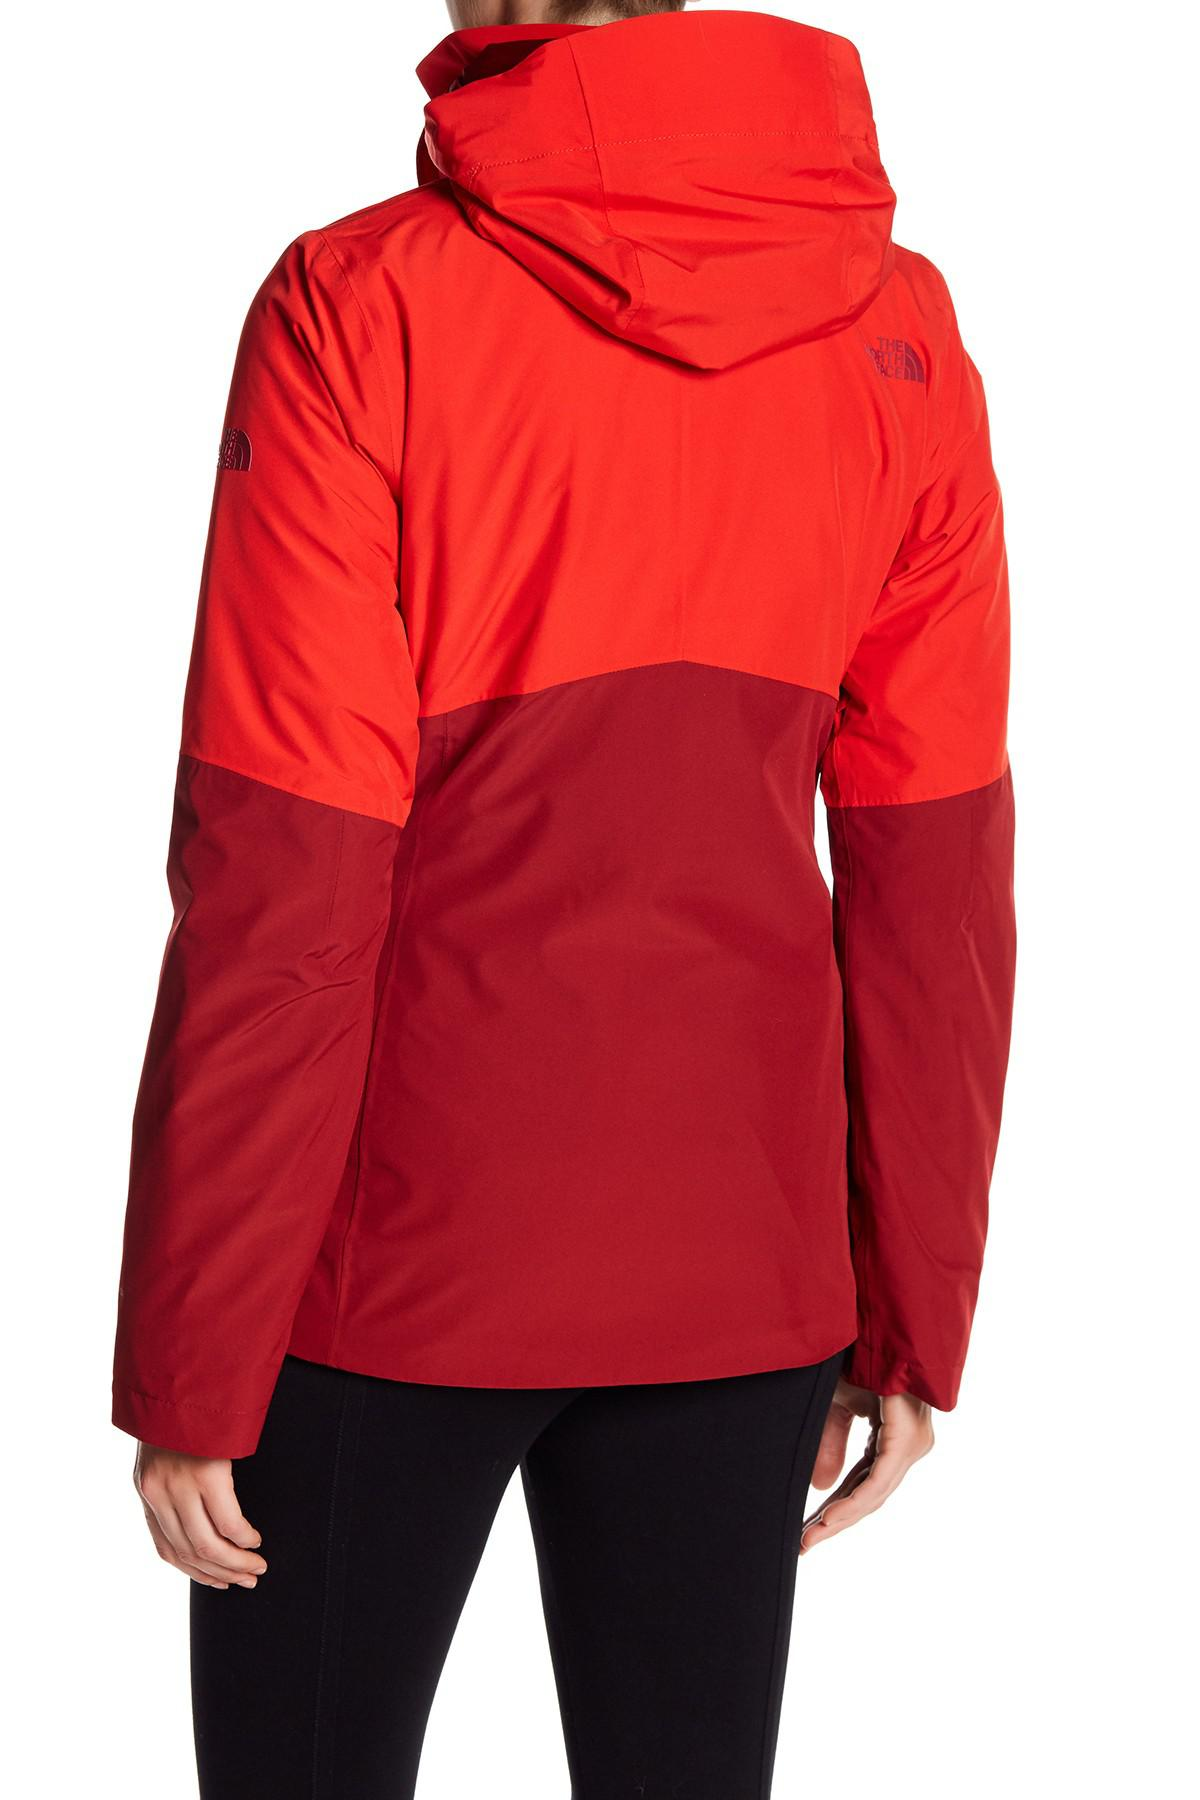 3d68edb5d The North Face Red Garner Triclimate Water Resistant Jacket